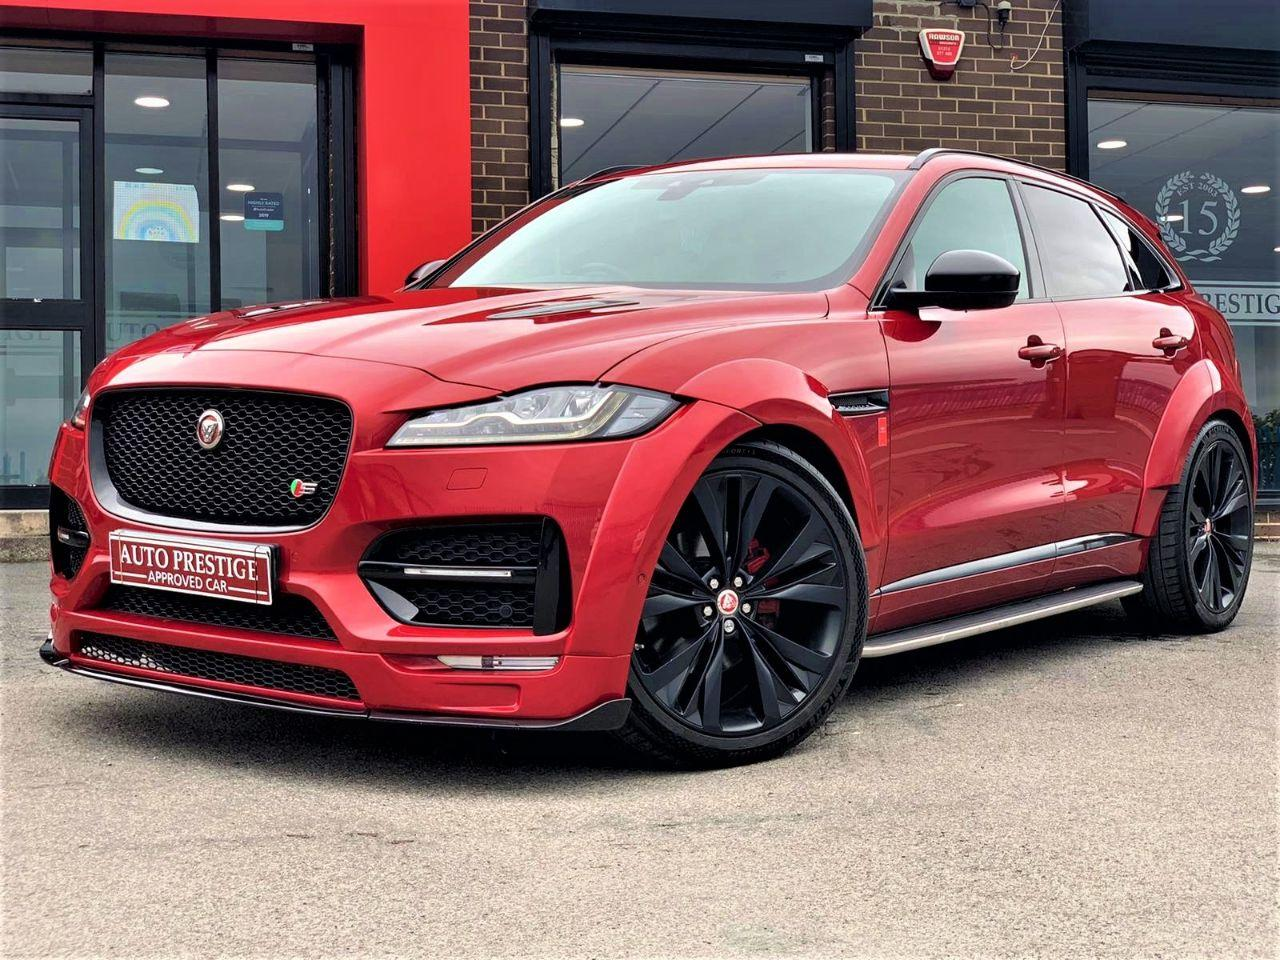 Jaguar F-pace 3.0d V6 S 5dr Auto AWD GTS WIDEBODY HUGH SPEC Four Wheel Drive Diesel Red at Autoprestige Bradford